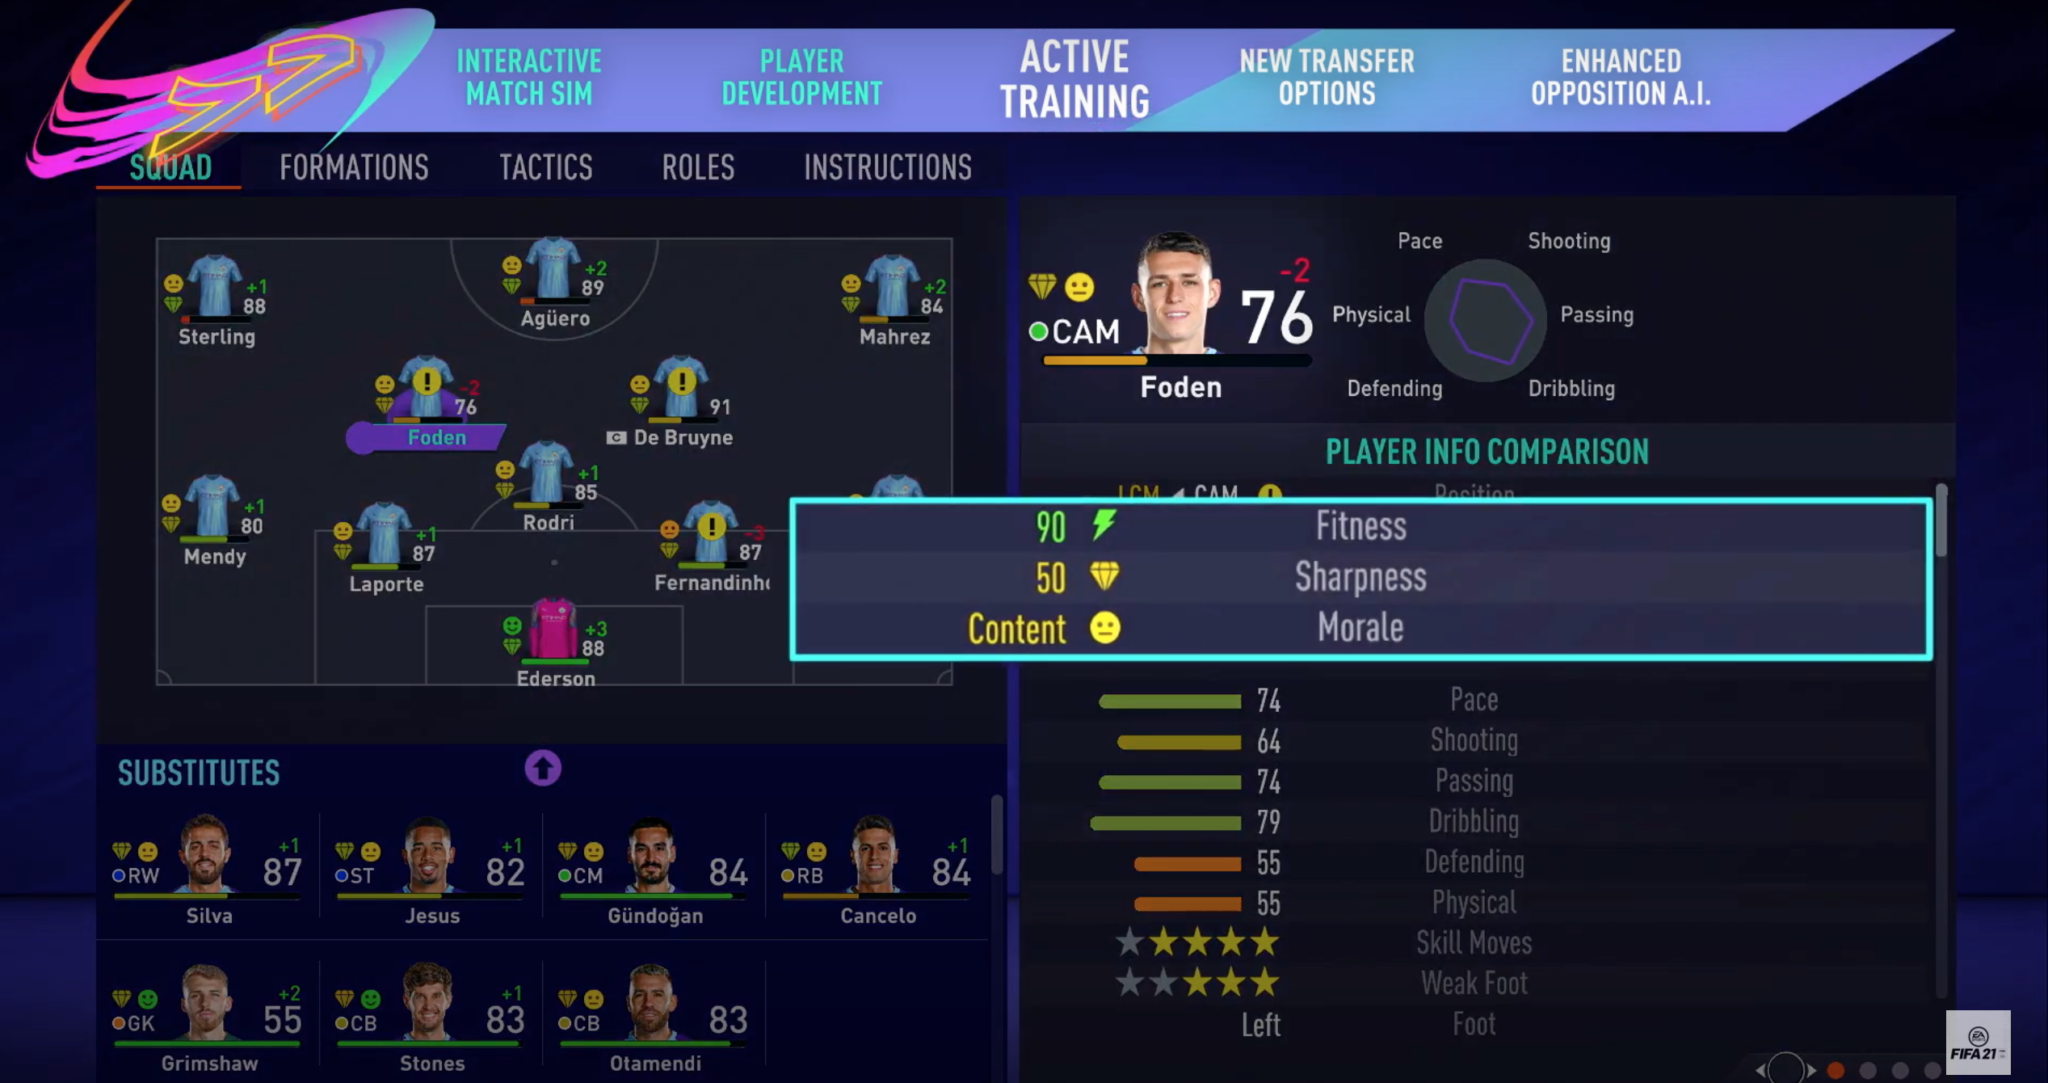 Federation Internationale de Football Association  21 players to have more freedom in Career Mode